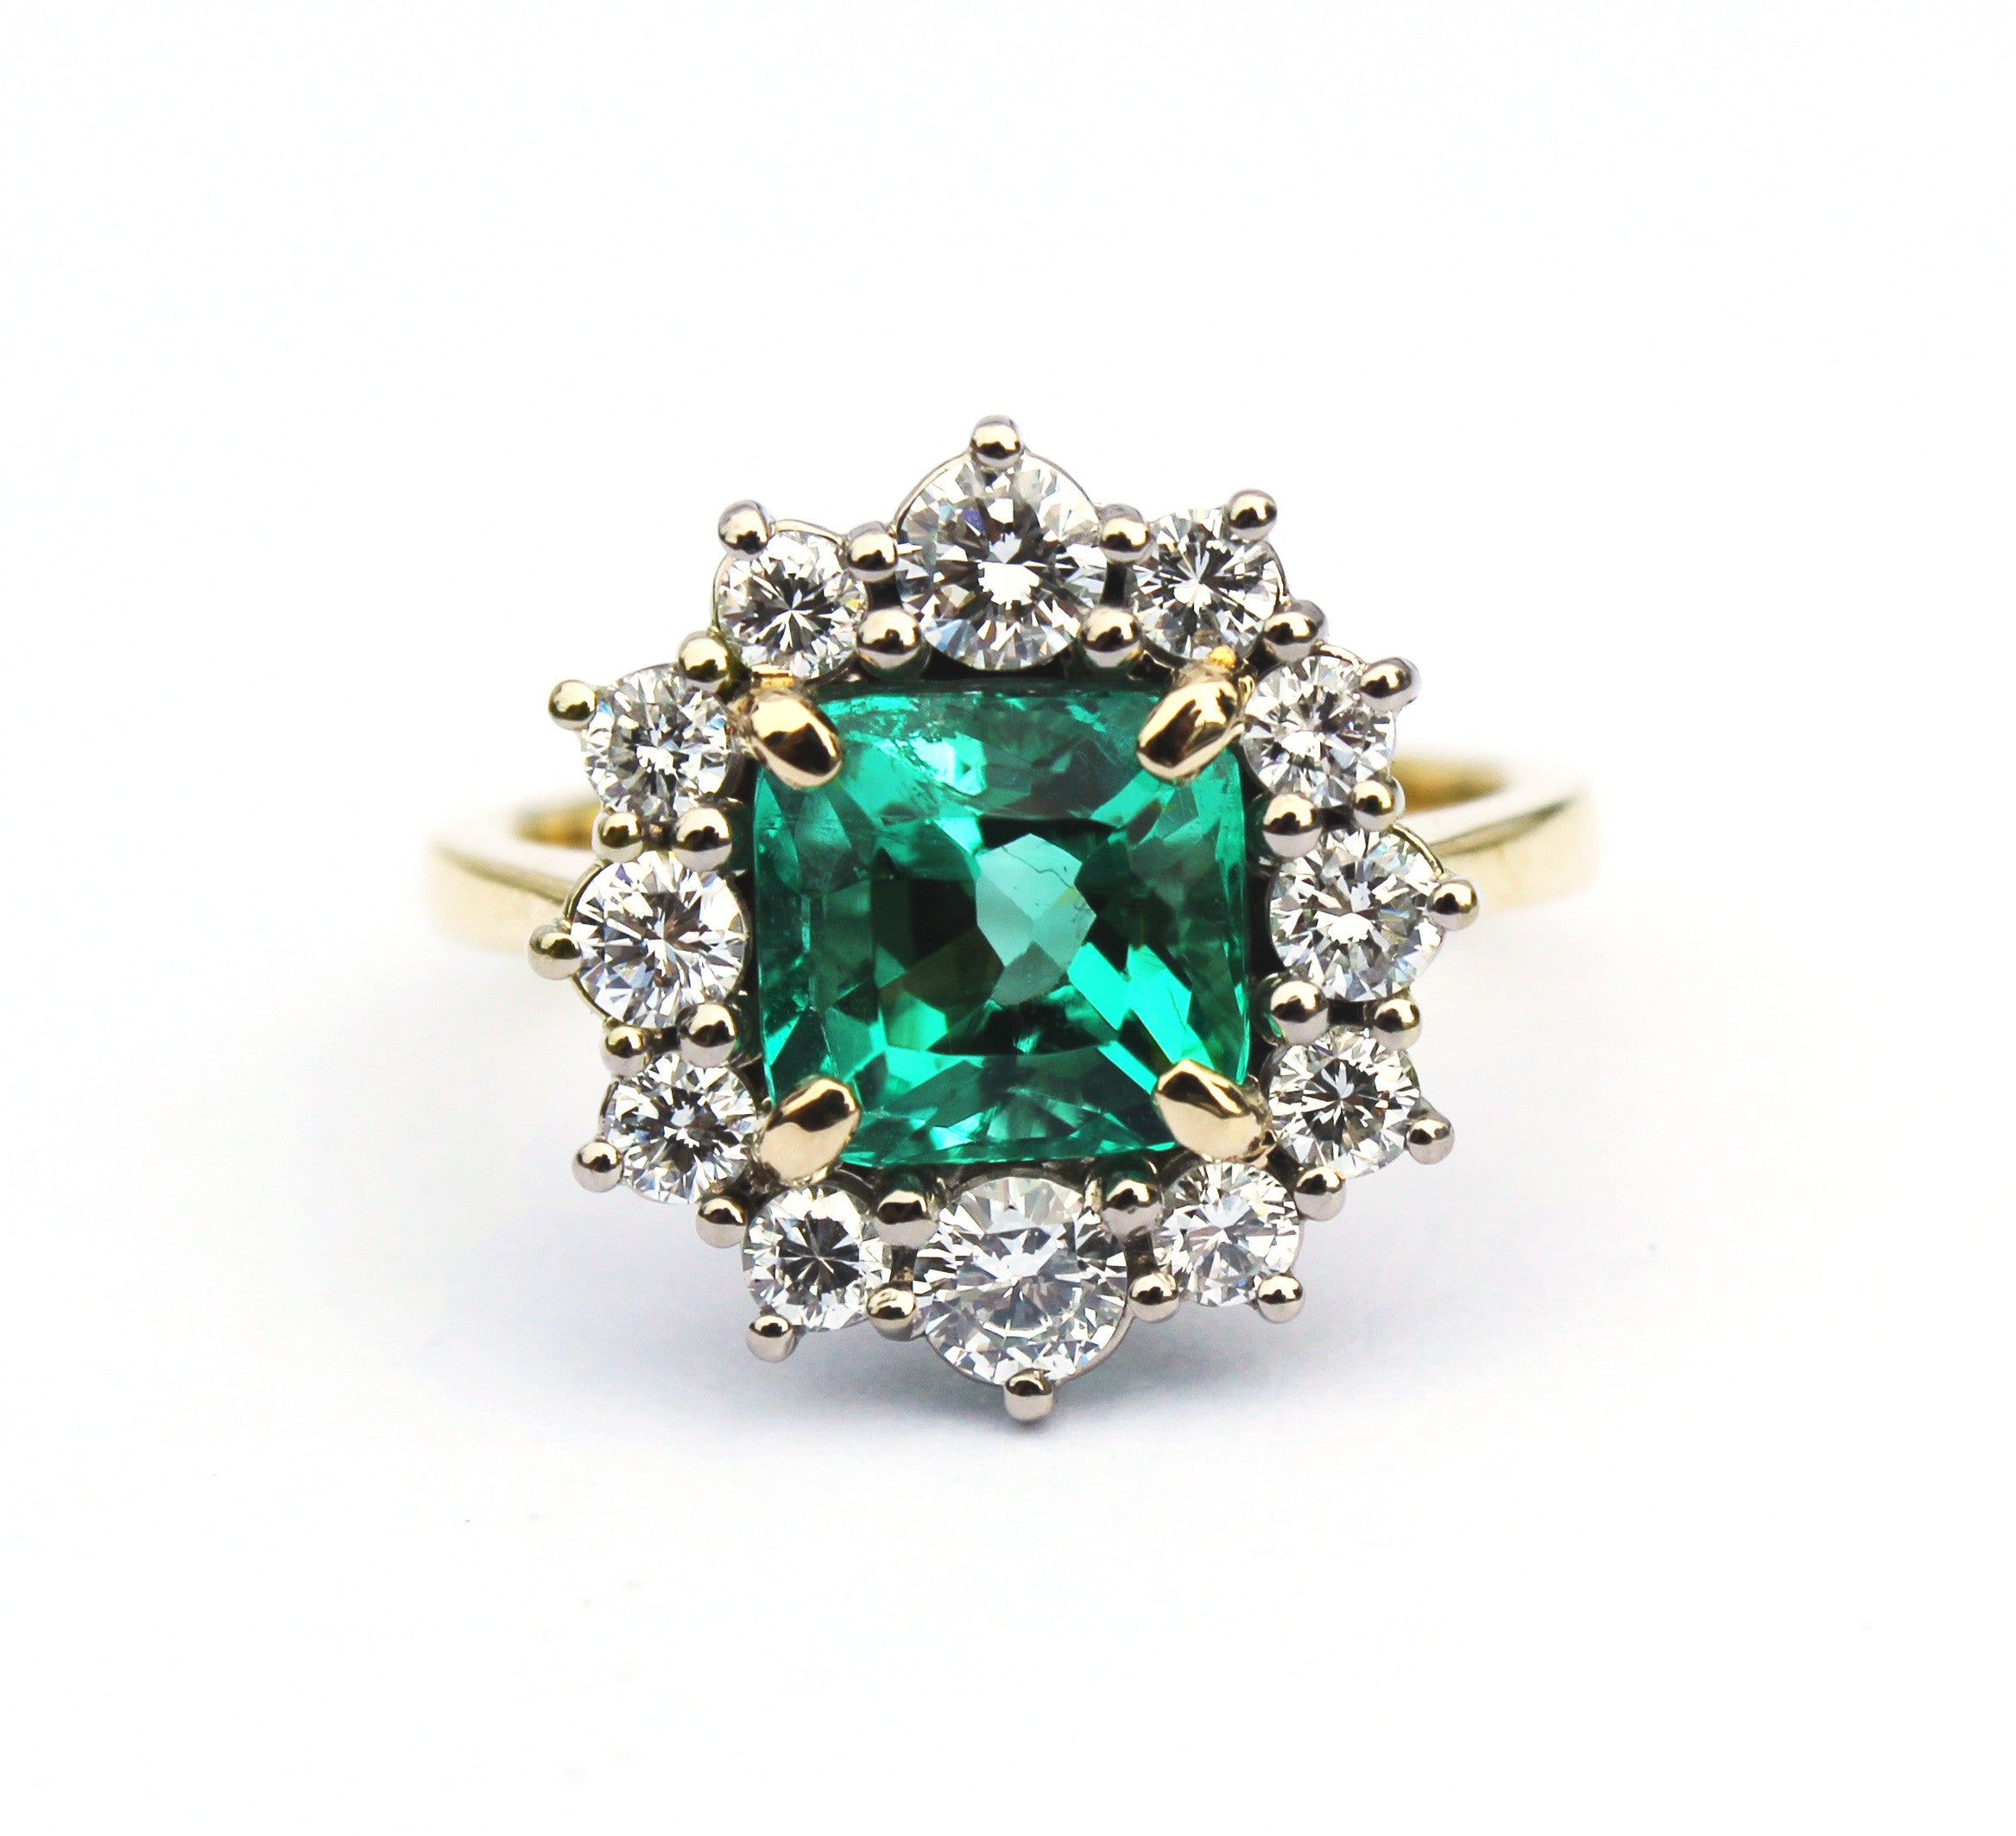 Magnificent Emerald Engagement Ring - Surrounded by round brilliant diamonds.